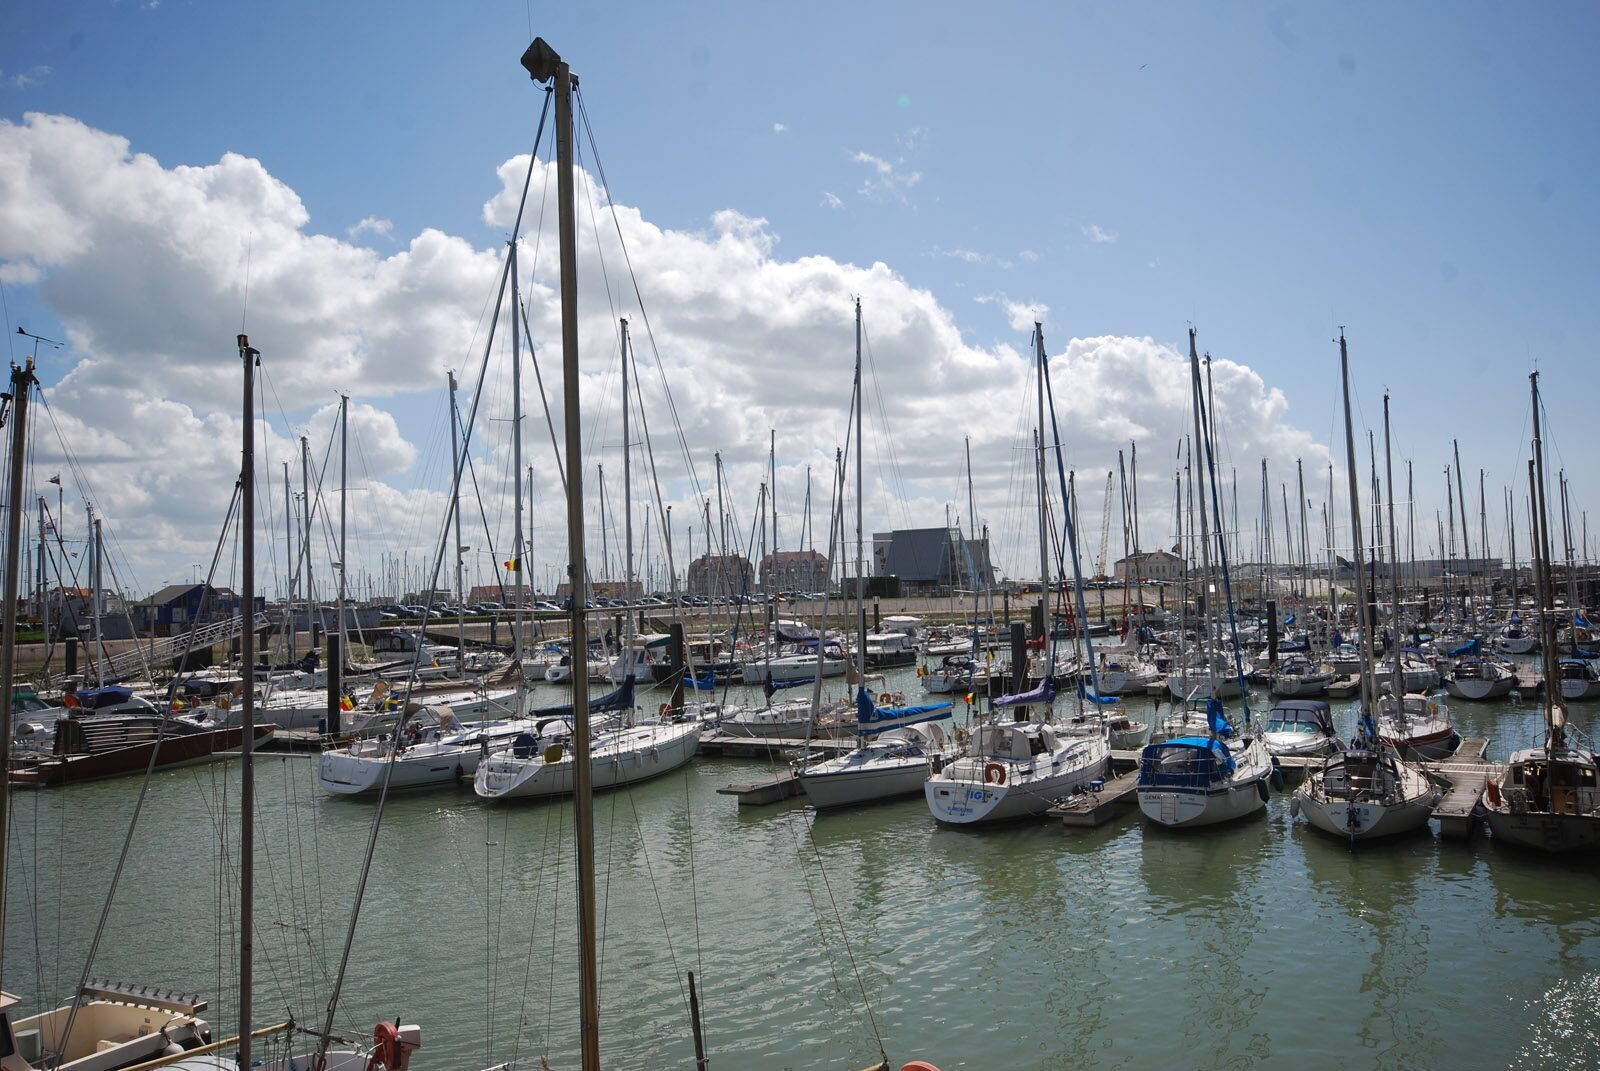 The harbour of Blankenberge